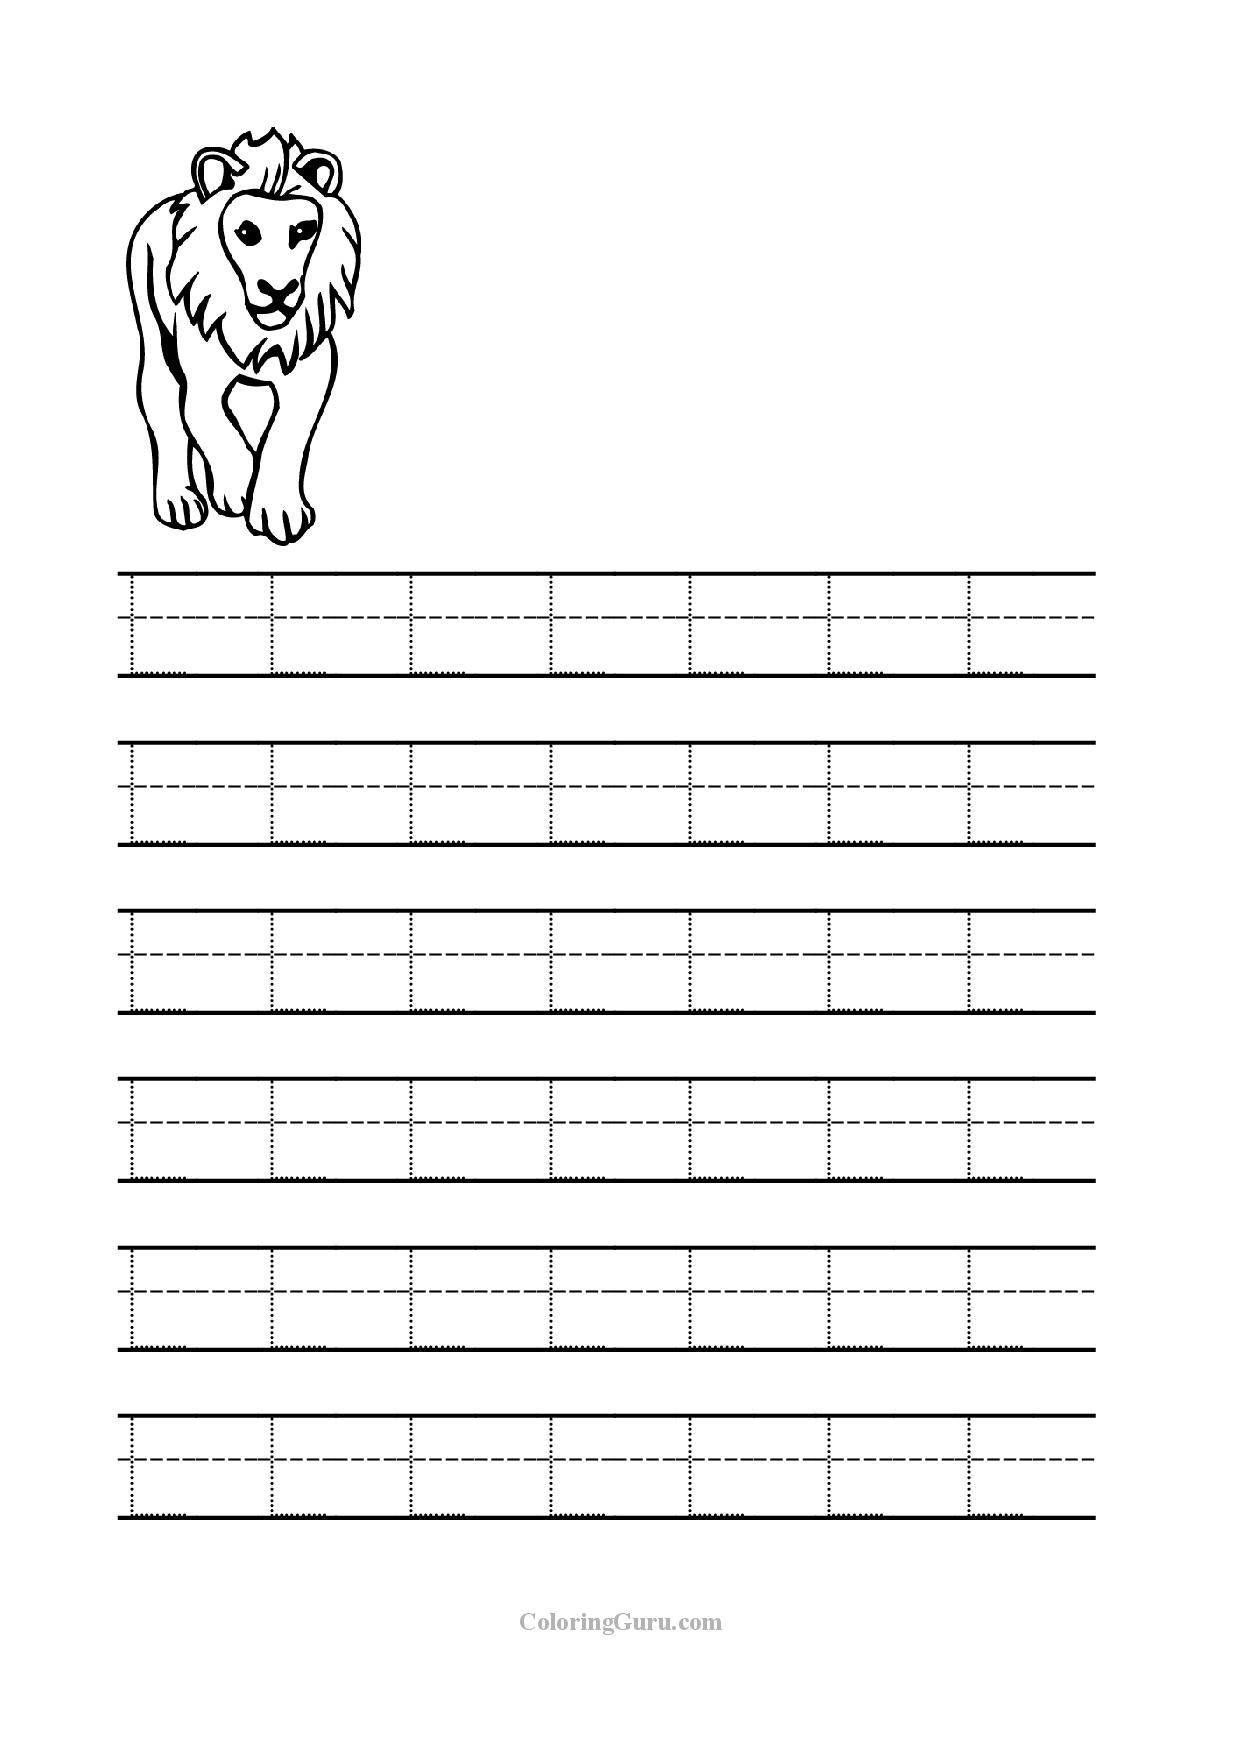 worksheet Letter L Worksheets free printable tracing letter l worksheets for preschool pre k preschool